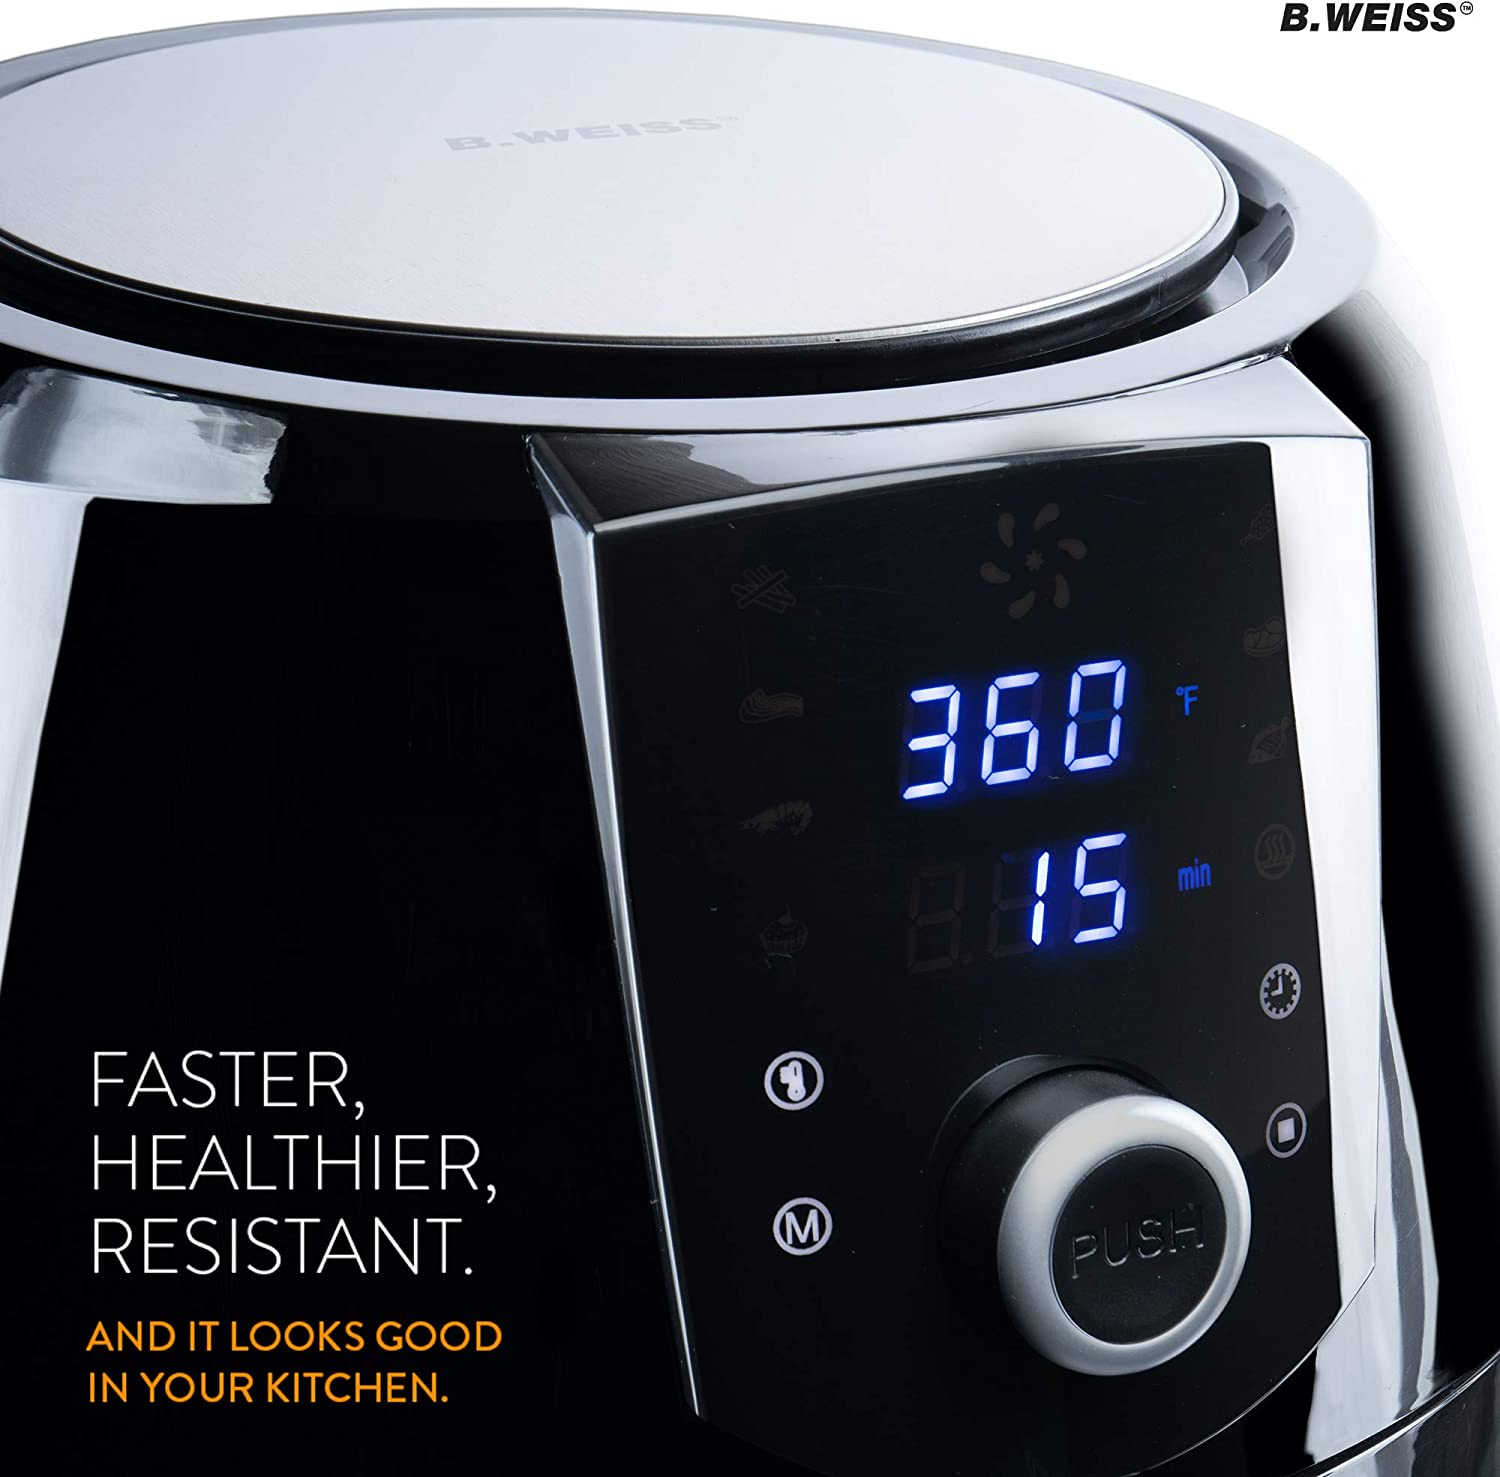 (B. WEISS) Family Size Huge capacity,With Airfryer